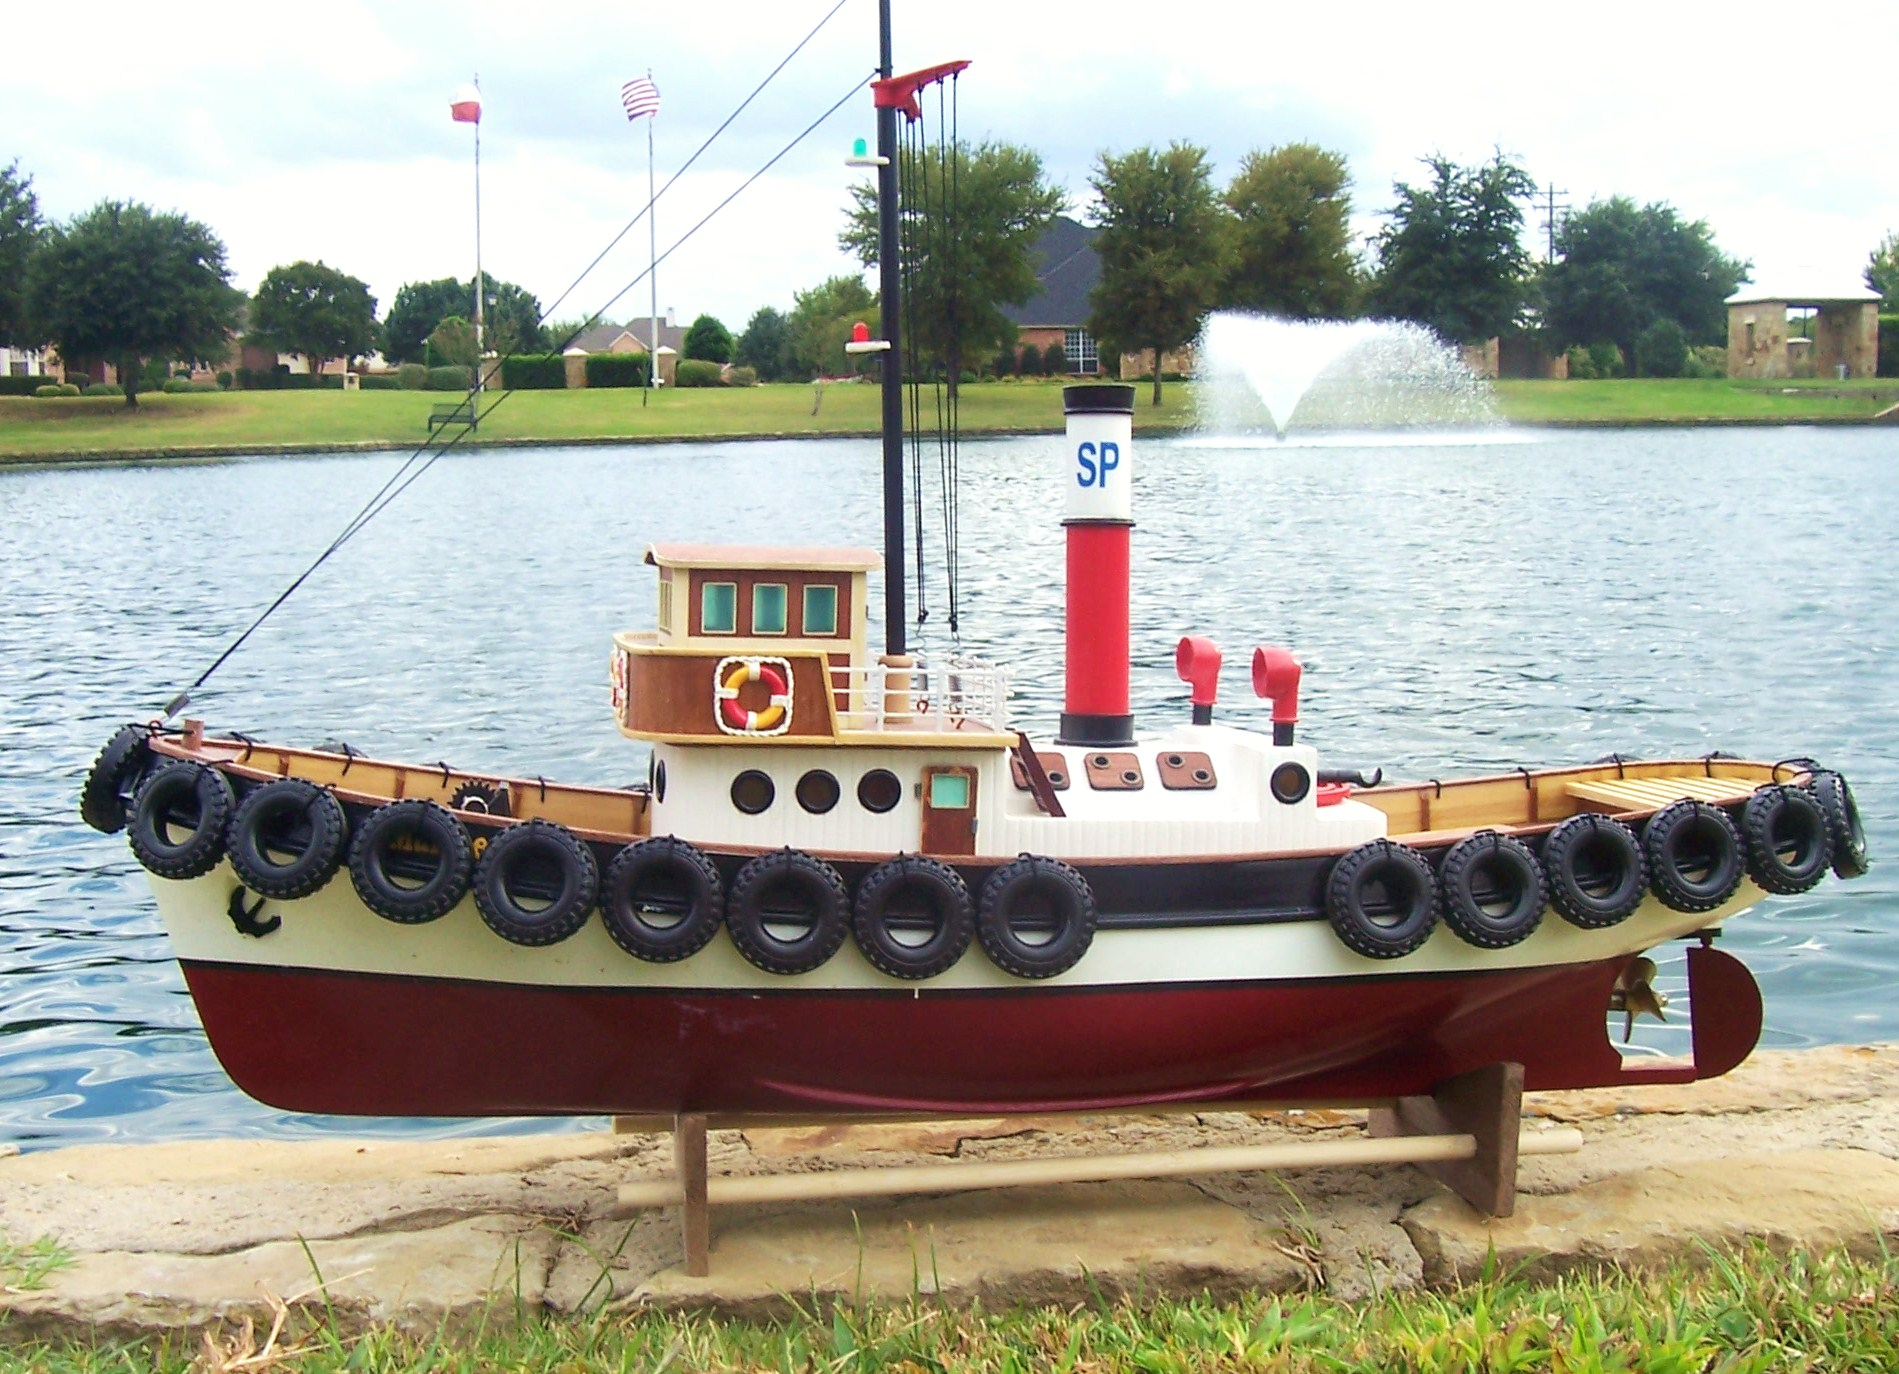 RC SAVANNAH HARBOR TUG BOAT – READY TO RUN | The Scale Modeler - Trains, Boats, Planes, Ships